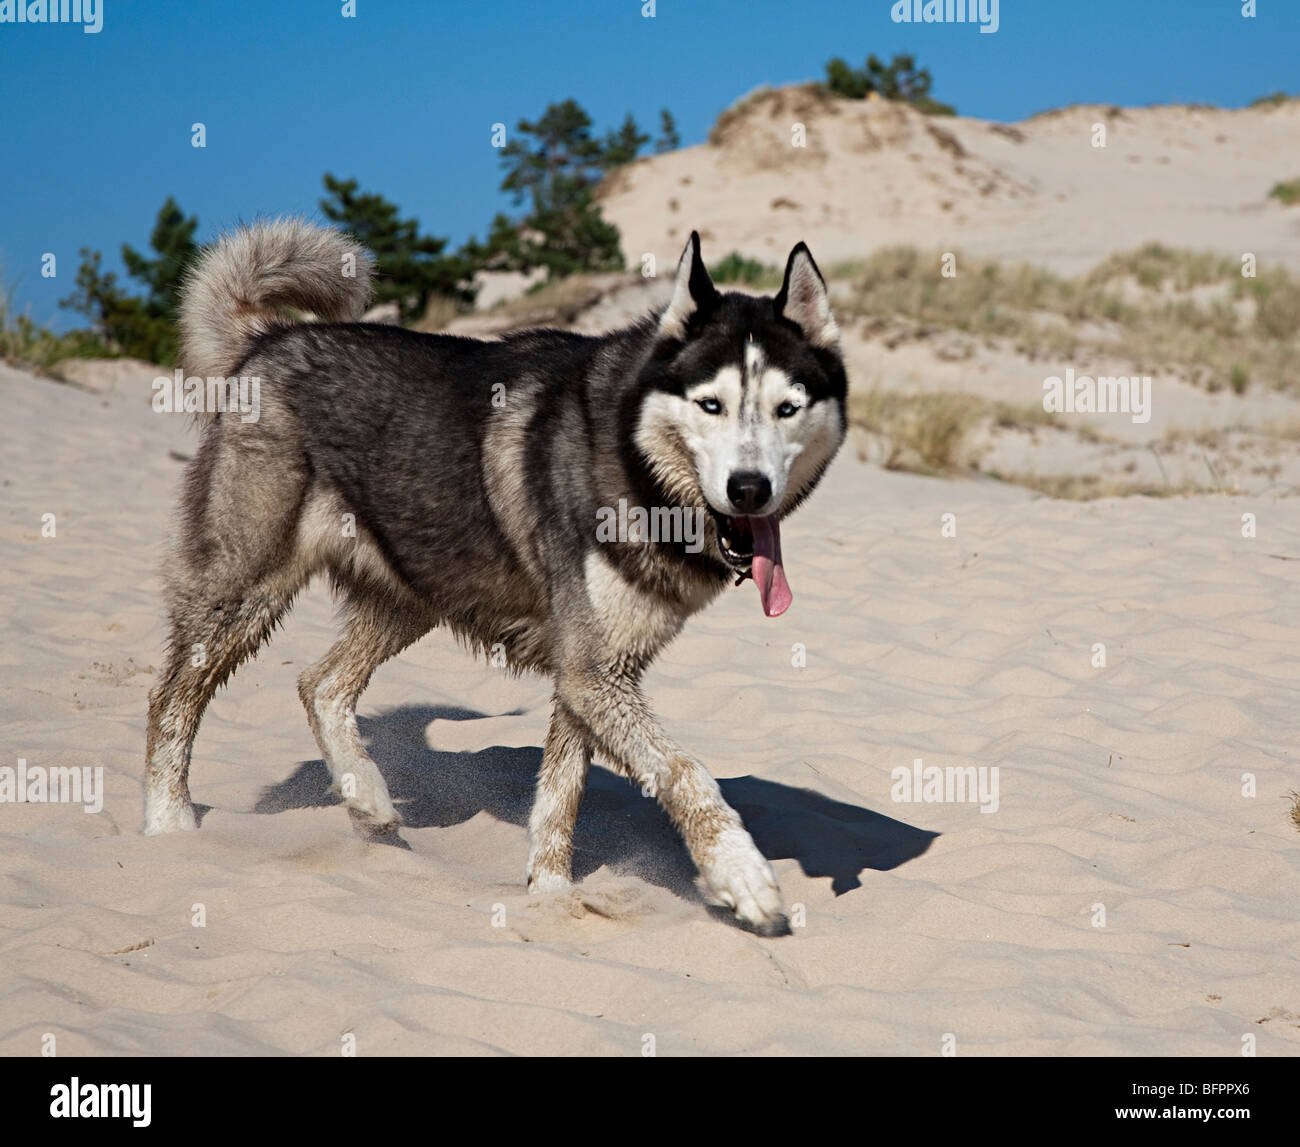 Dog with tongue hanging out panting in heat of sand dunes Poland - Stock Image